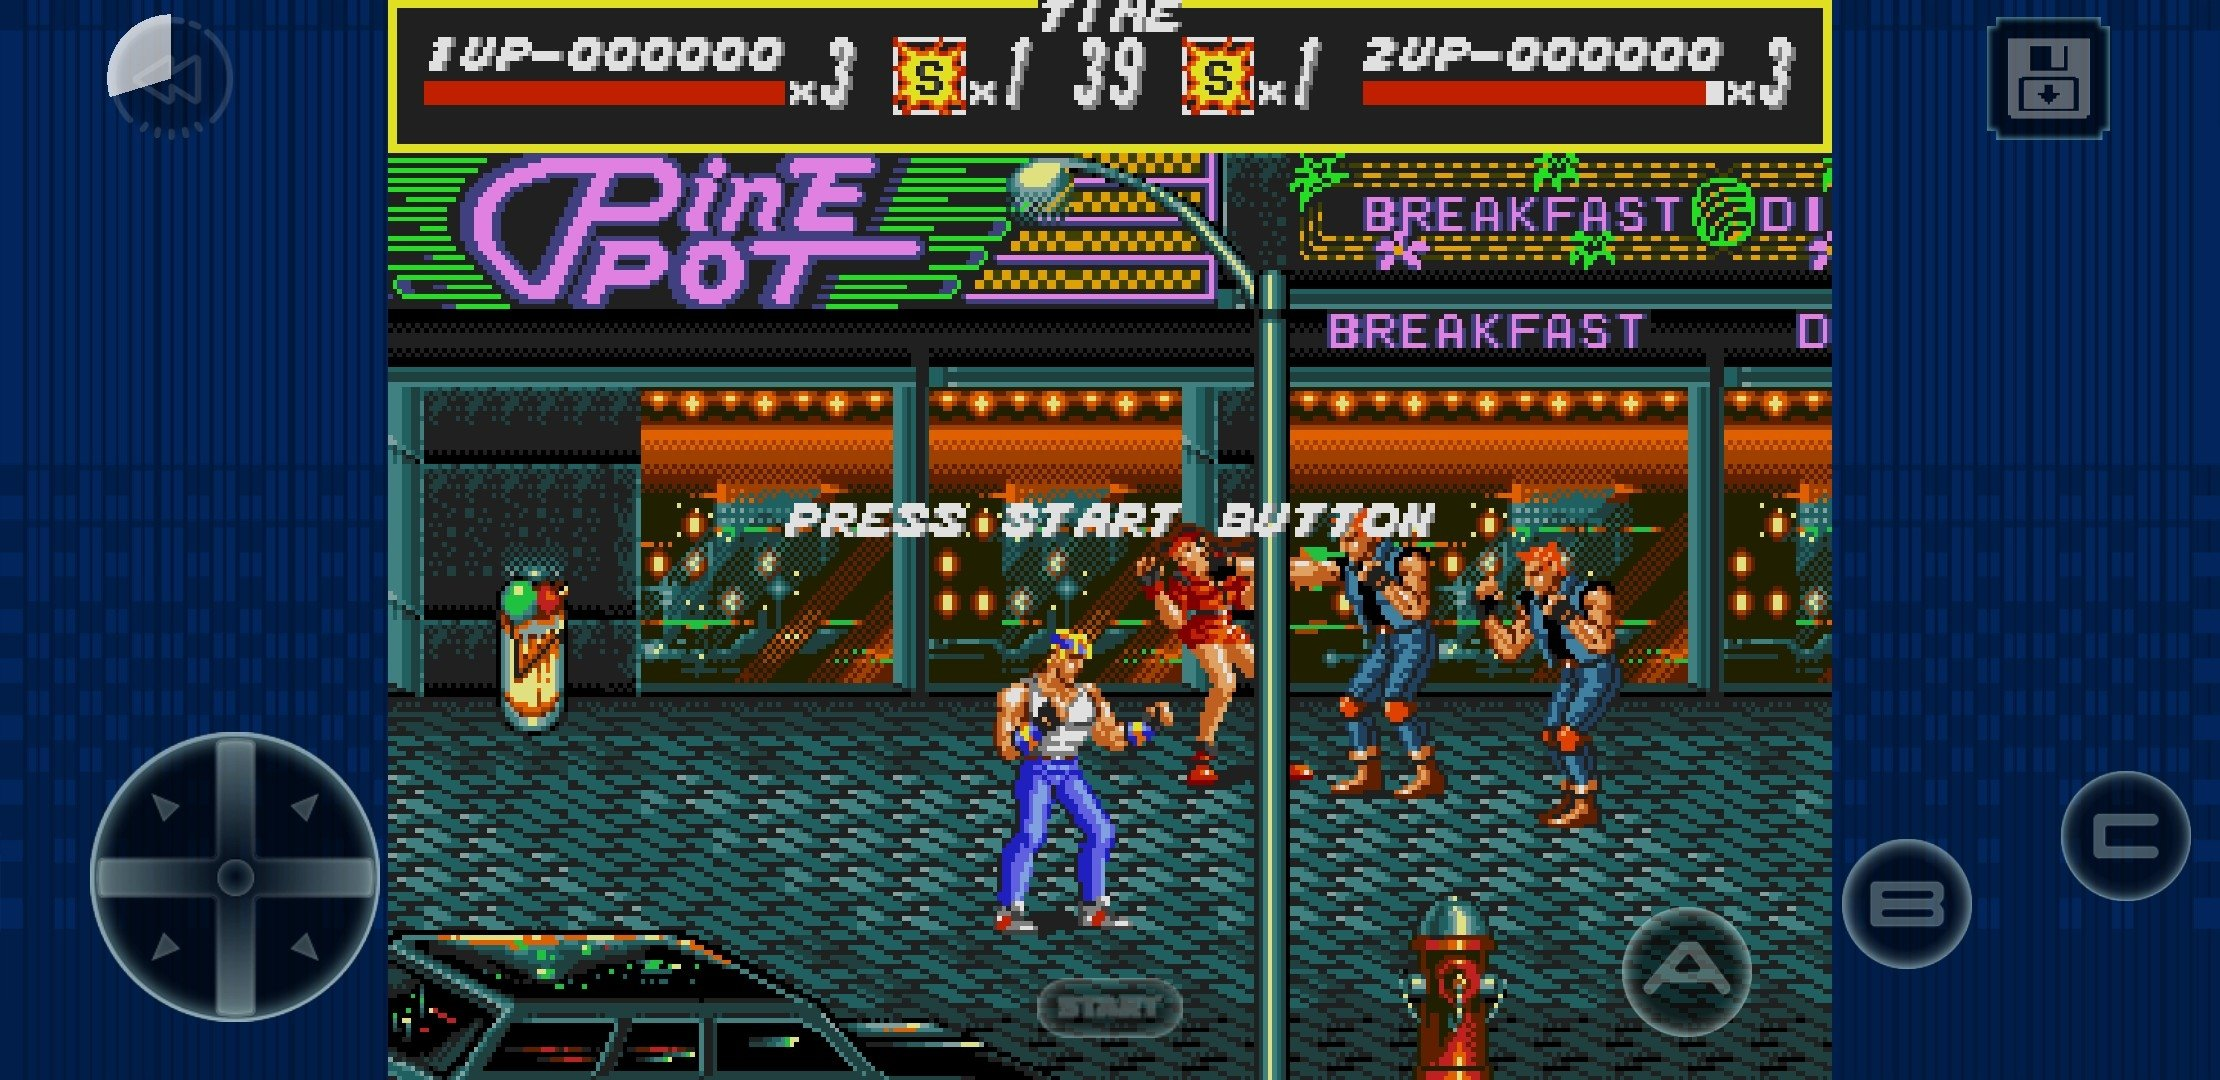 Streets of Rage Classic 2 0 2 - Download for Android APK Free